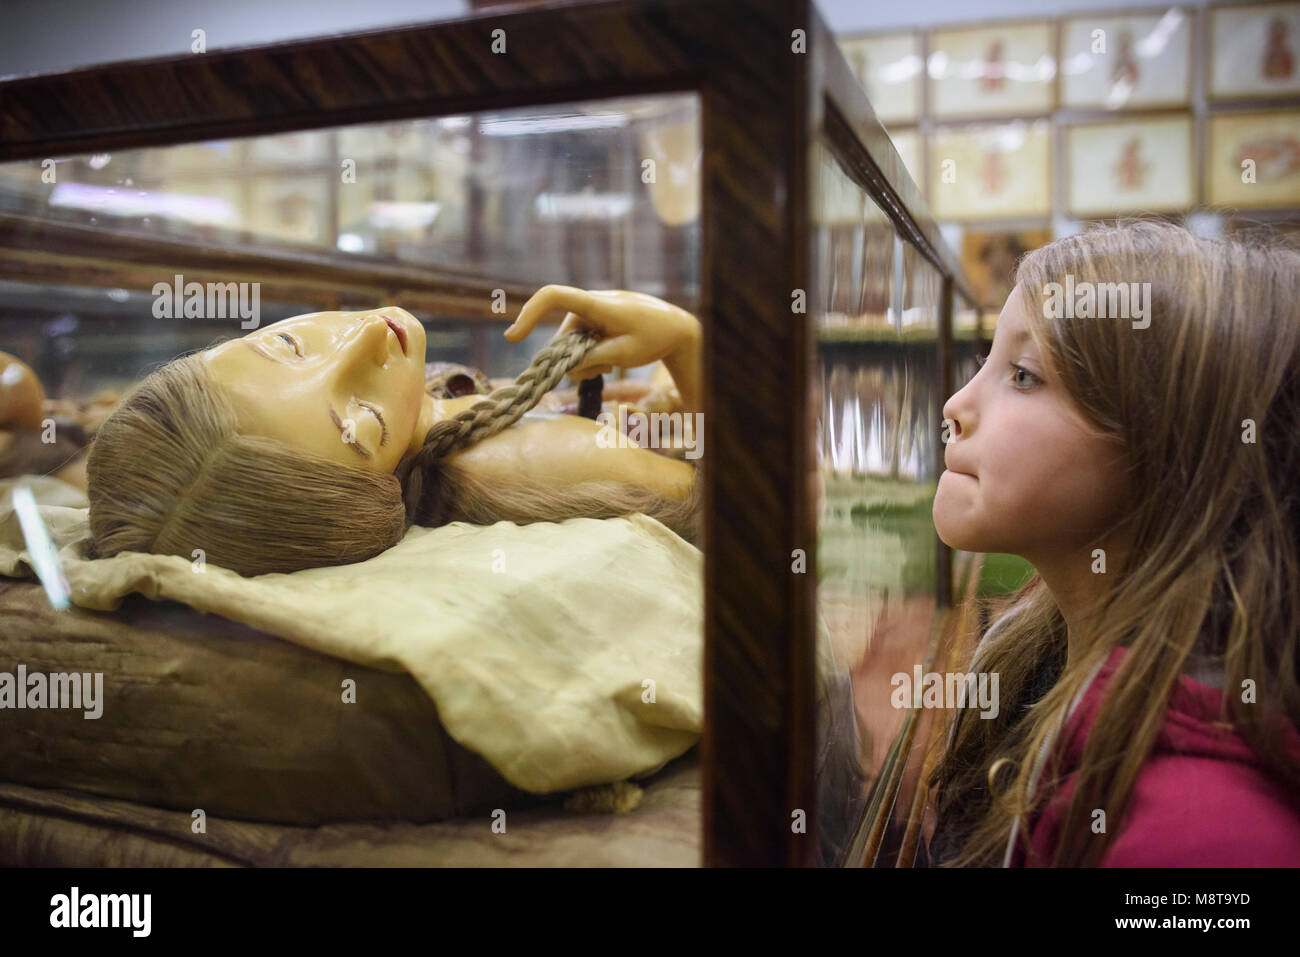 Florence. Italy. Child (7yrs old) looking at one of the 18th century wax anatomical models on display at La Specola, - Stock Image